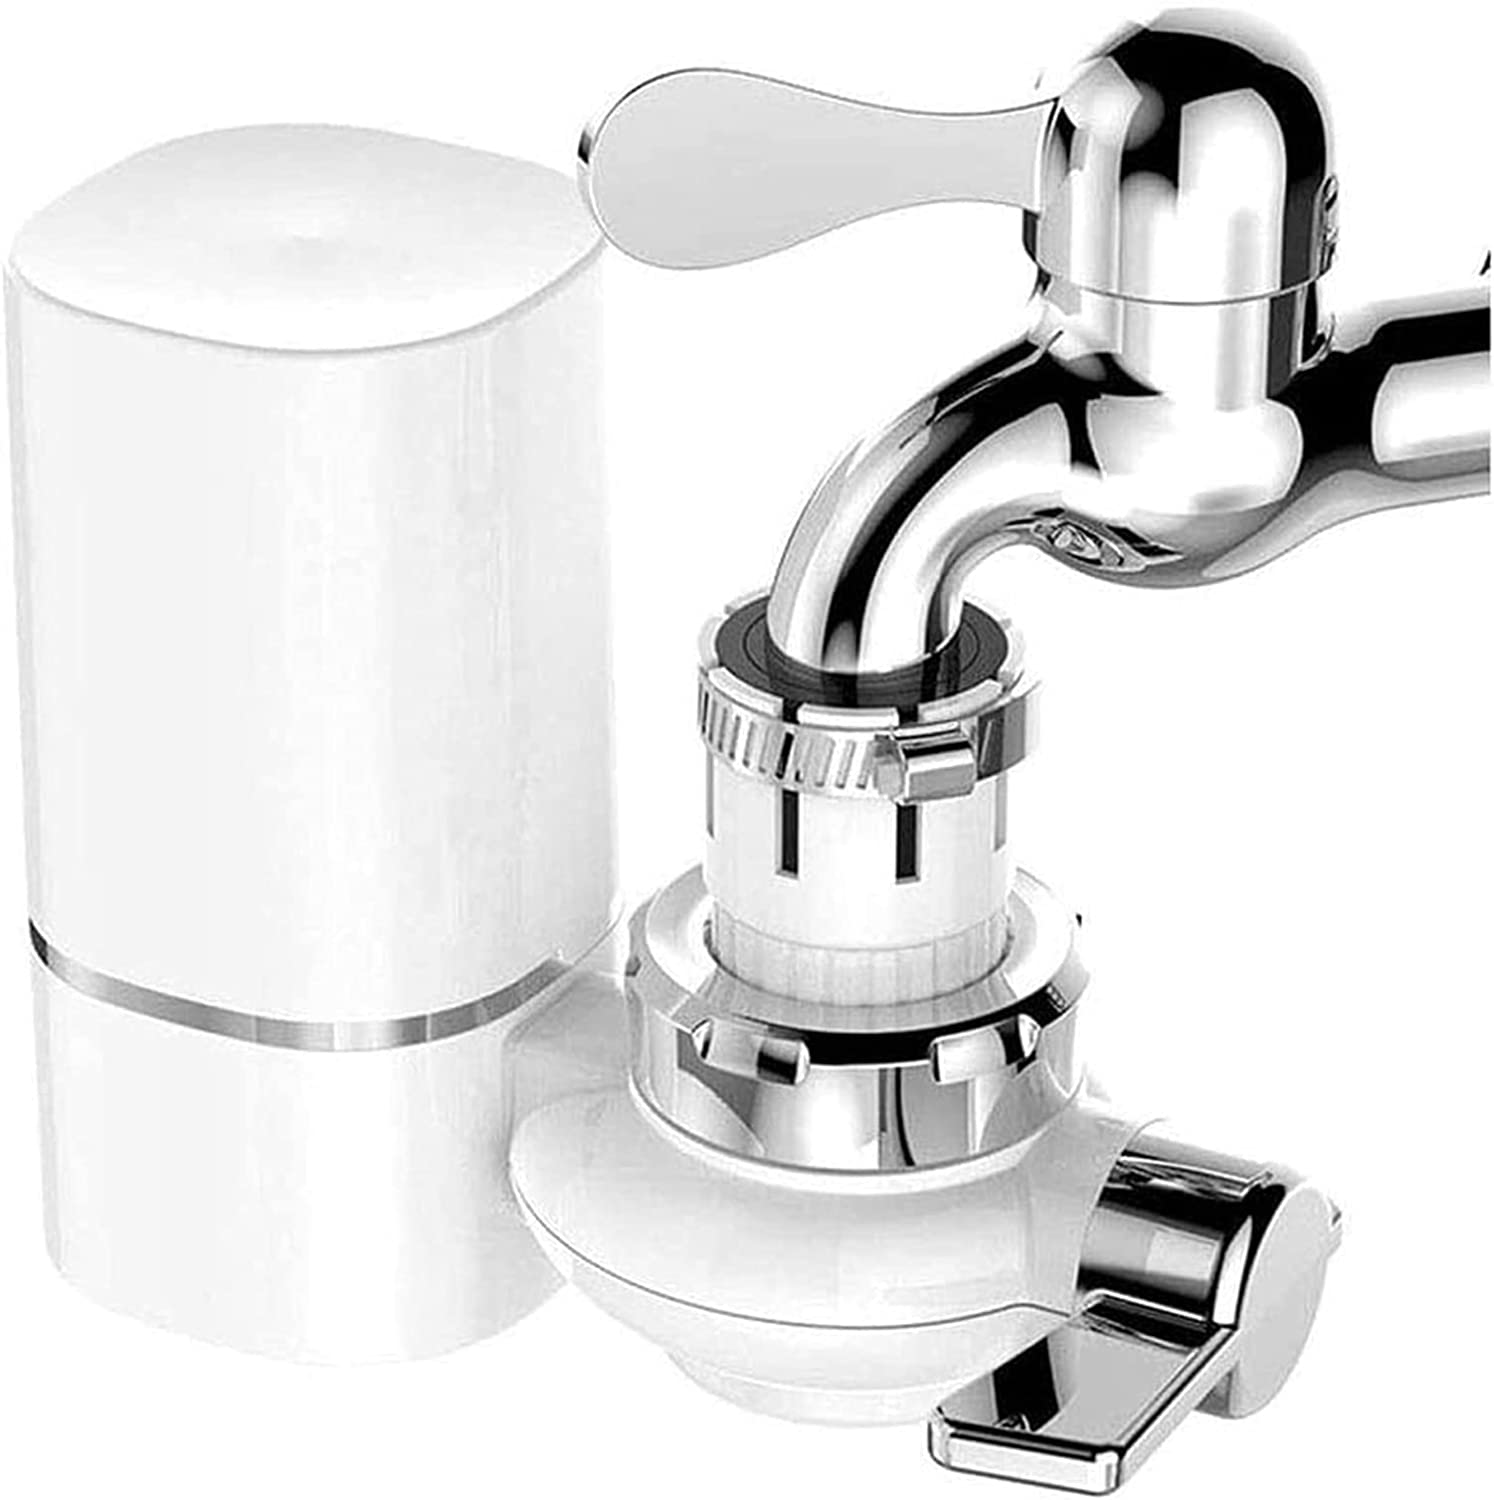 TUQIAODIAN Water Filter Advanced Long-awaited Direct sale of manufacturer wit Faucet